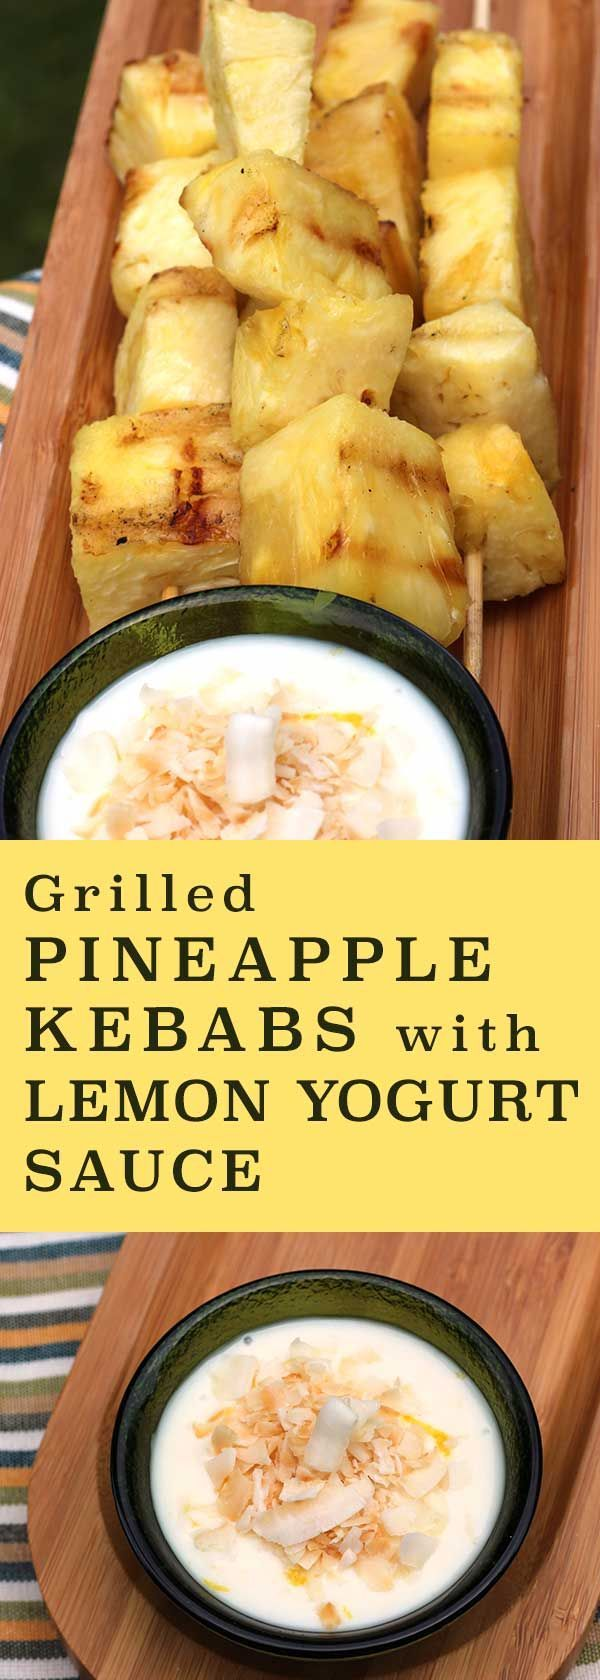 Great when the grill's fired up anyway! Leftovers make a great snack. http://www.diabeticfoodie.com/2016/05/grilled-pineapple-kebabs-with-lemon-yogurt-sauce/?utm_content=buffer49f4e&utm_medium=social&utm_source=pinterest.com&utm_campaign=buffer Foodie&utm_content=Grilled Pineapple Kebabs with Lemon Yogurt Sauce